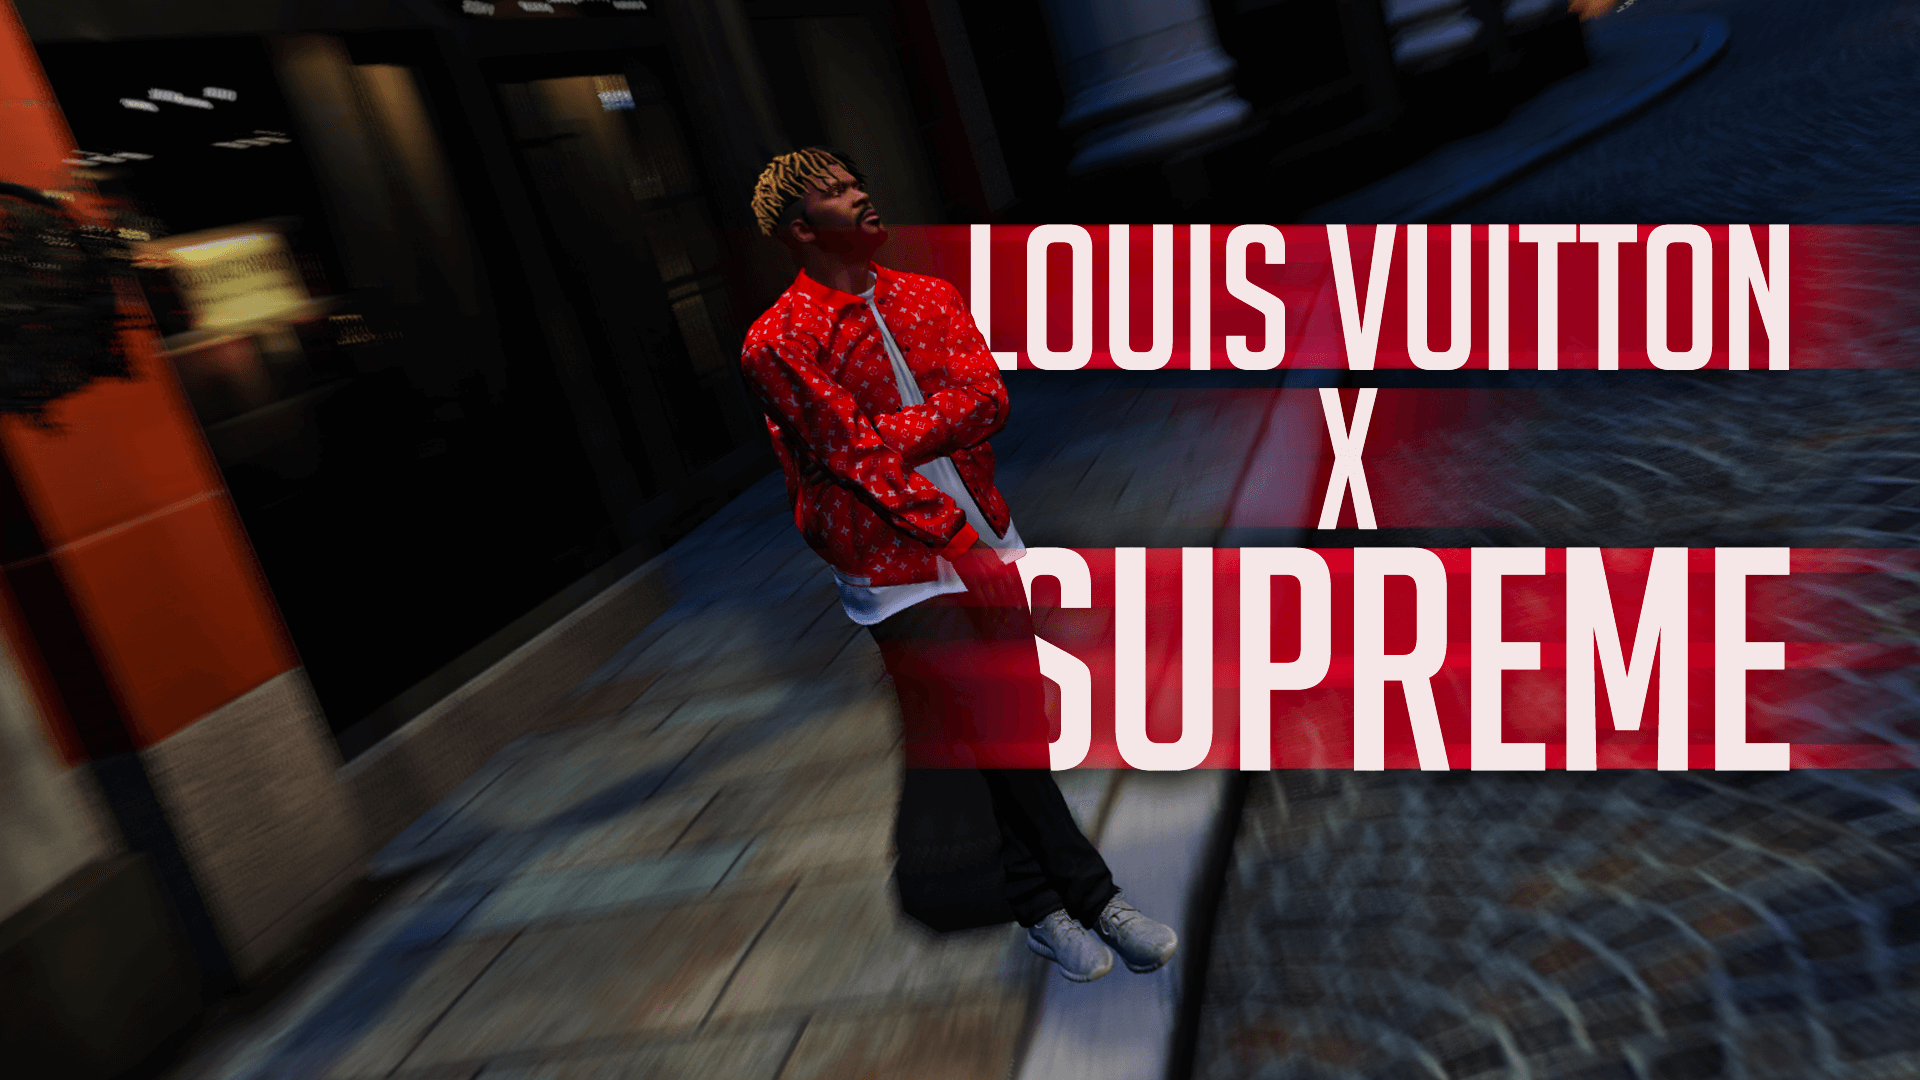 Supreme Lv Wallpaper Computer Scale